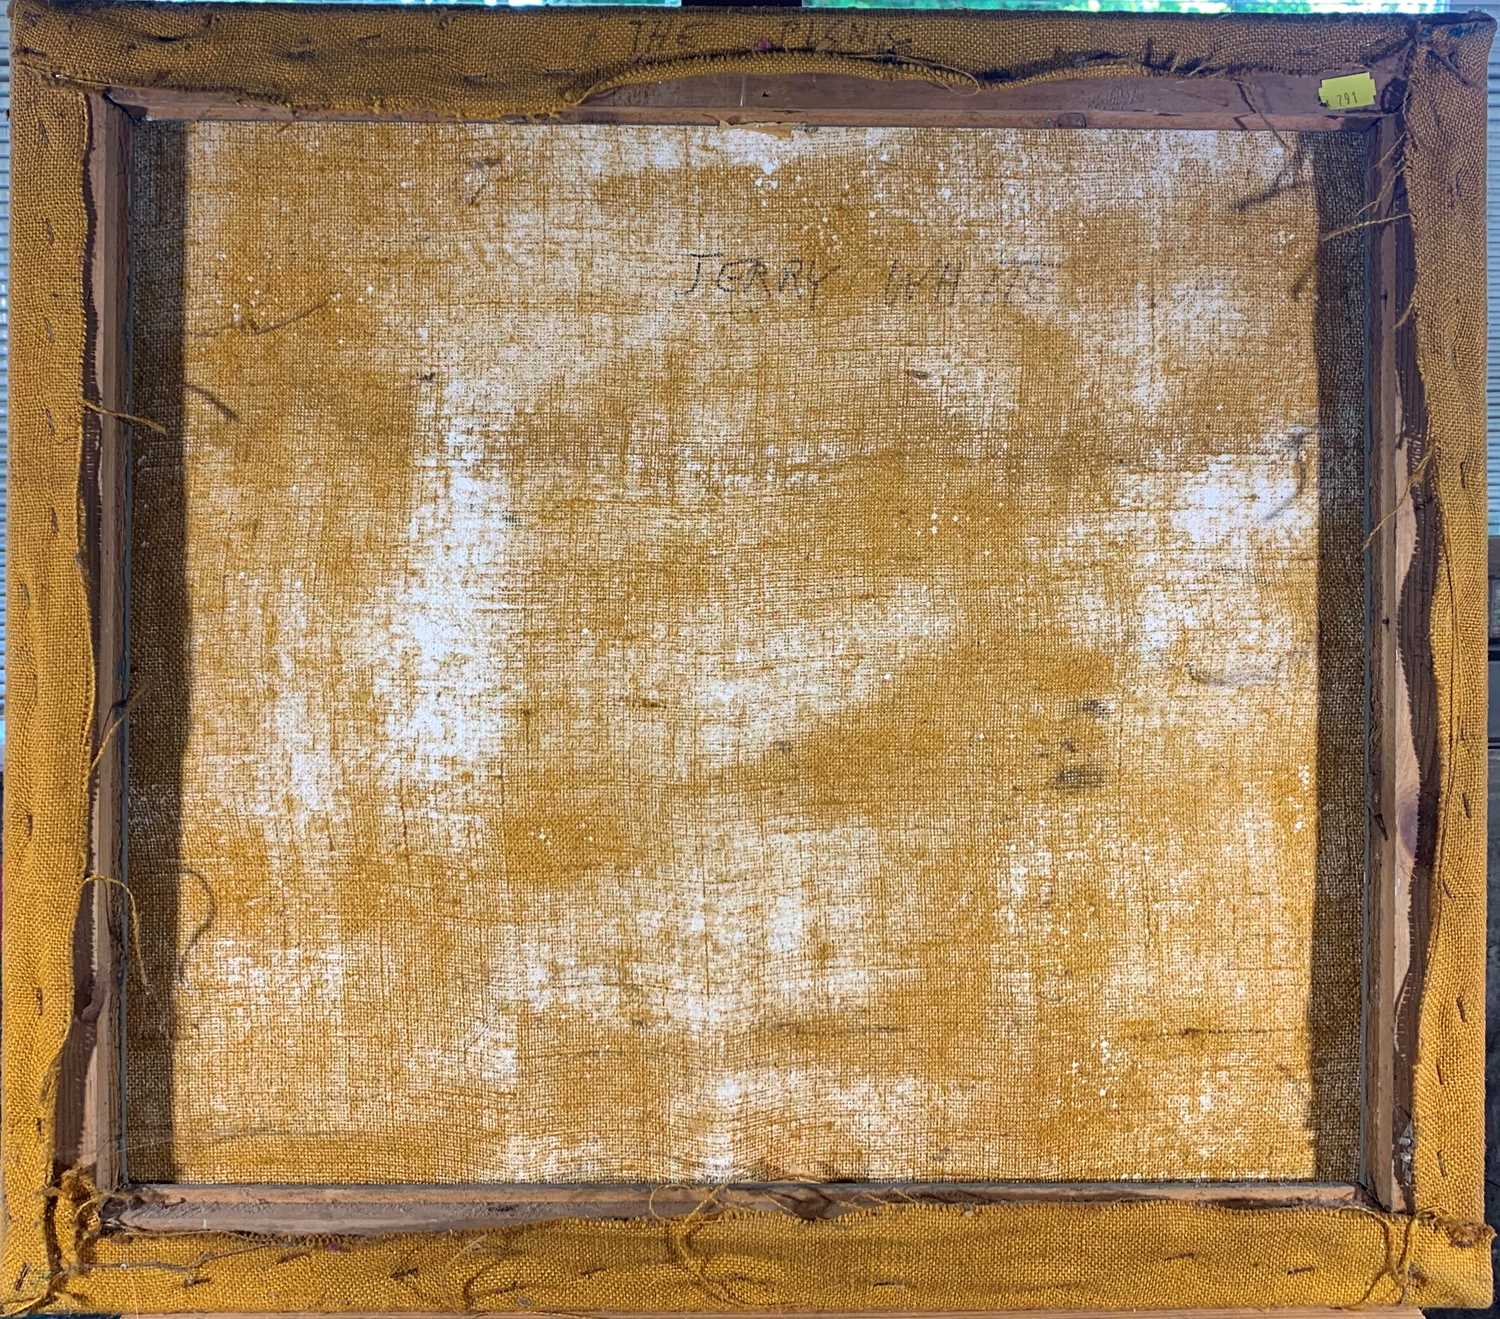 Lot 248 - Jerry WHITE (b.1952)The Picnic Oil on canvasSigned and inscribed as titled verso 56 x